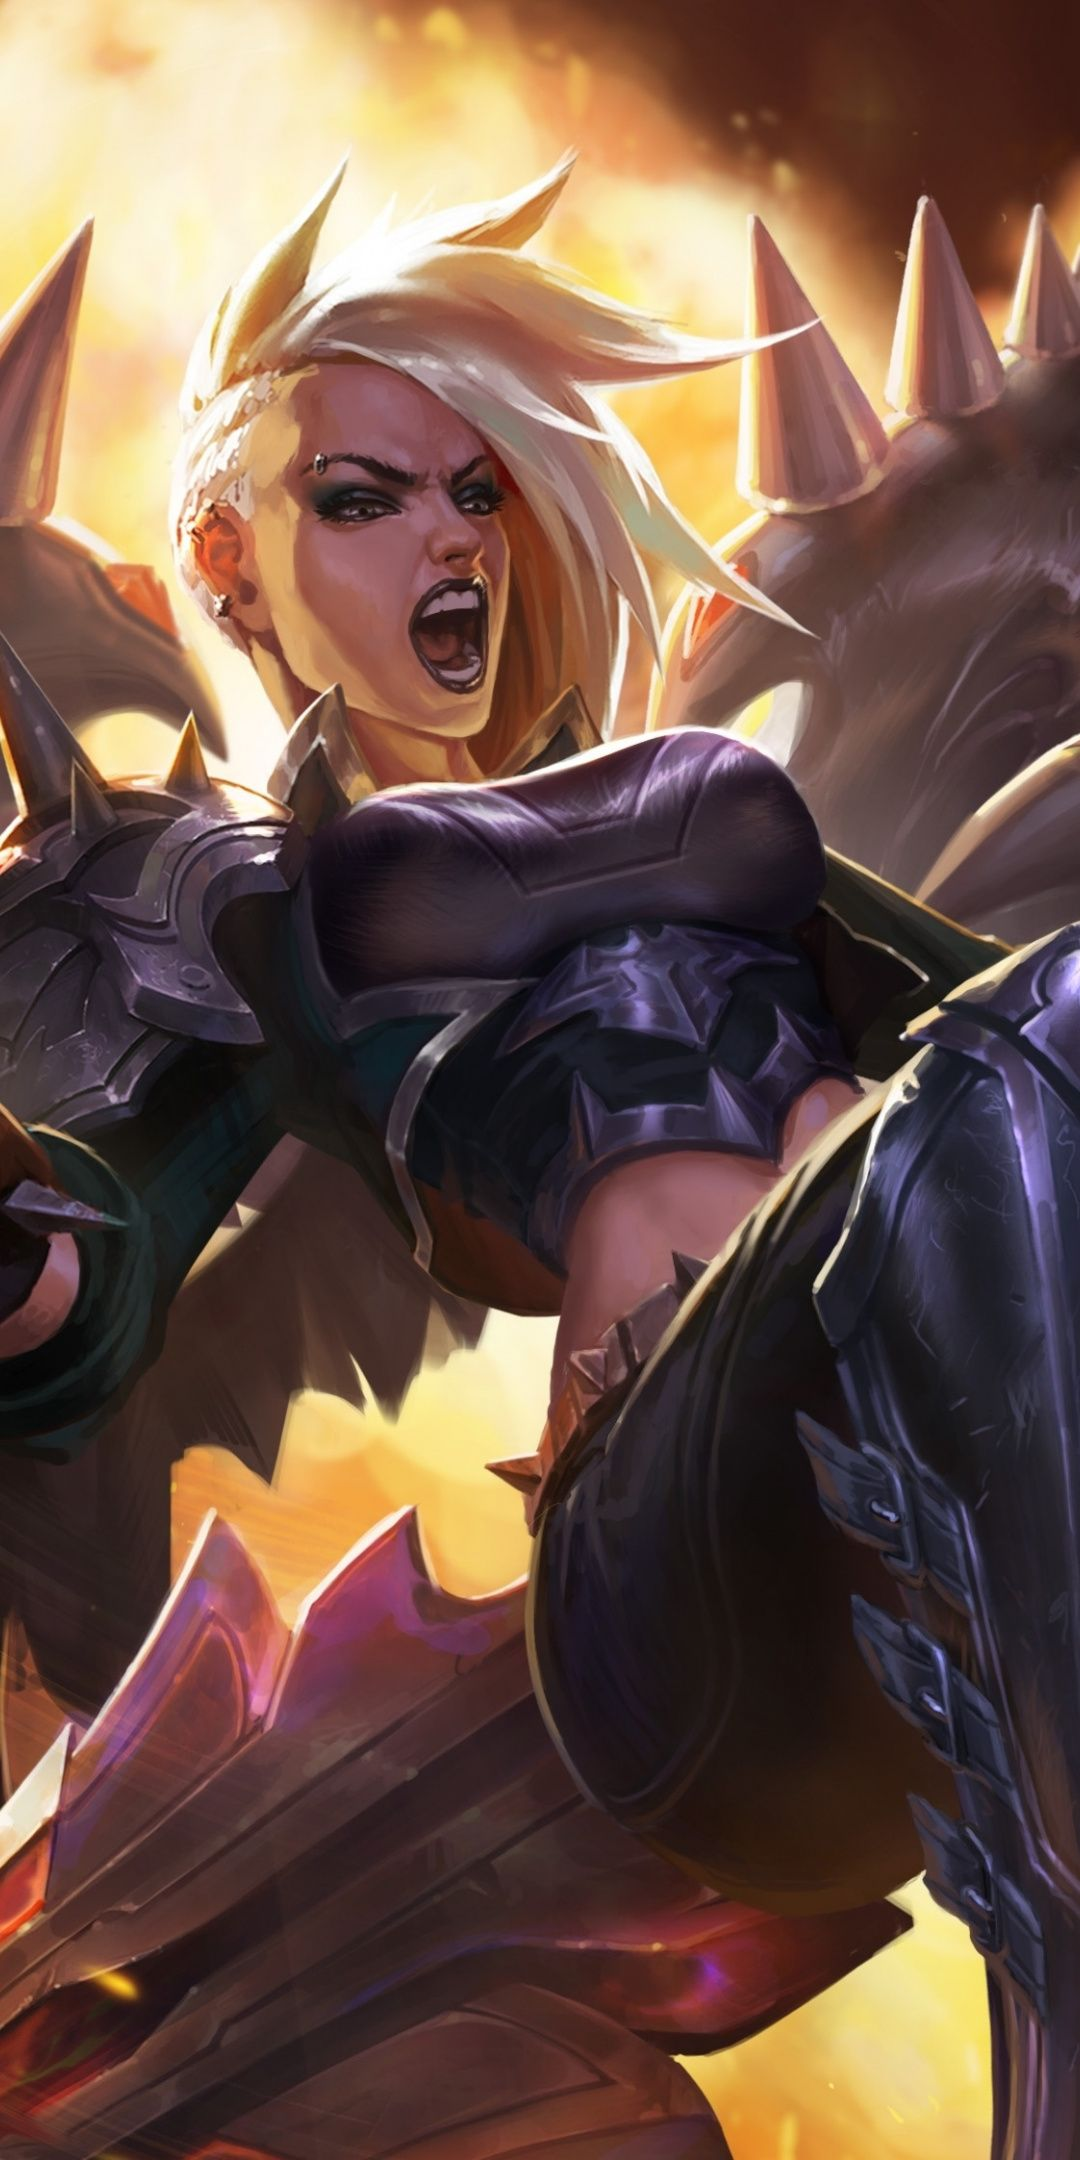 Angry girl, kayle, video game, League of Legends